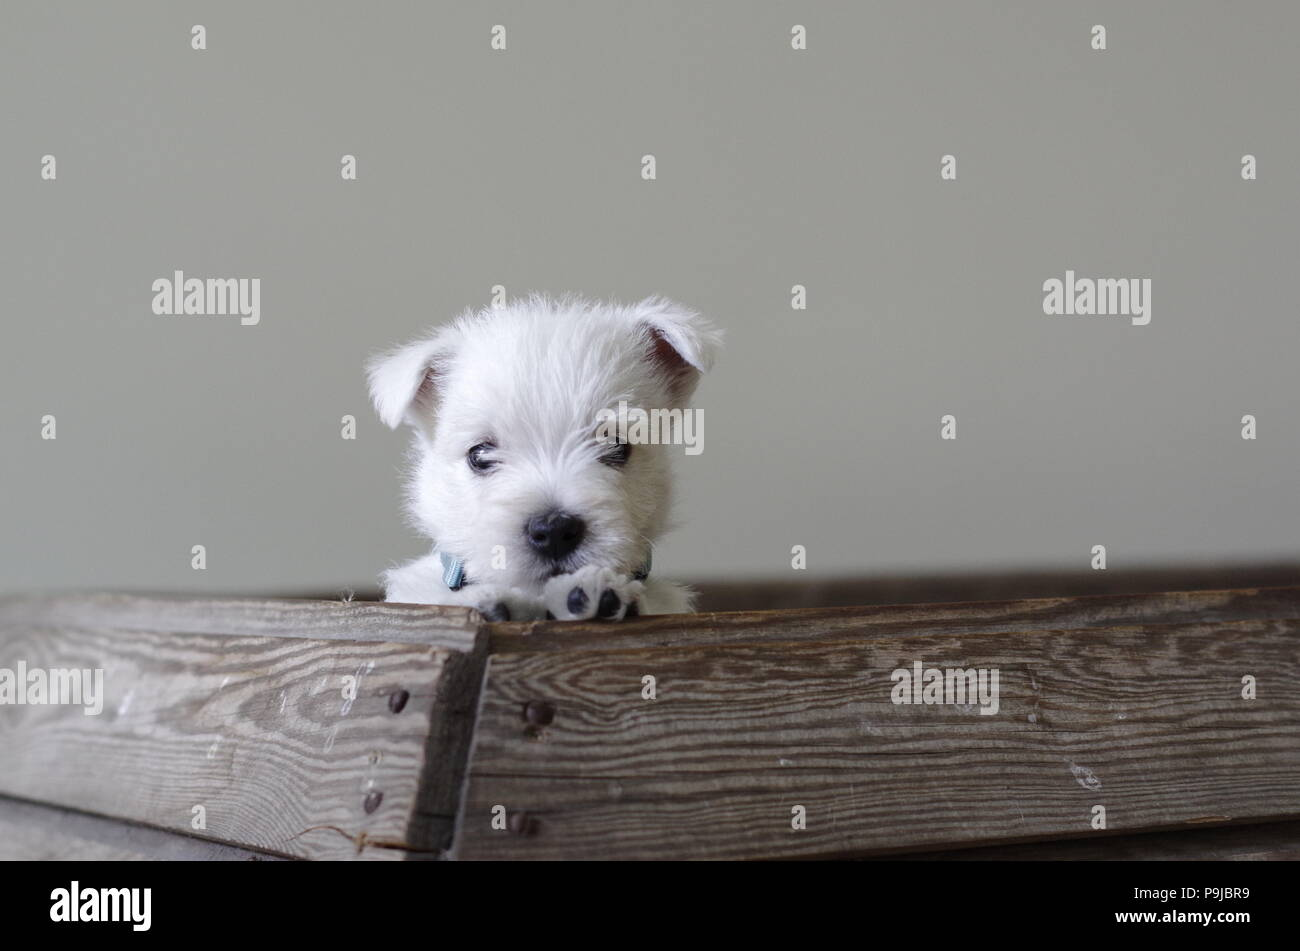 Cute and beautiful Westie puppy with a blue collar looking out of its nest - Stock Image